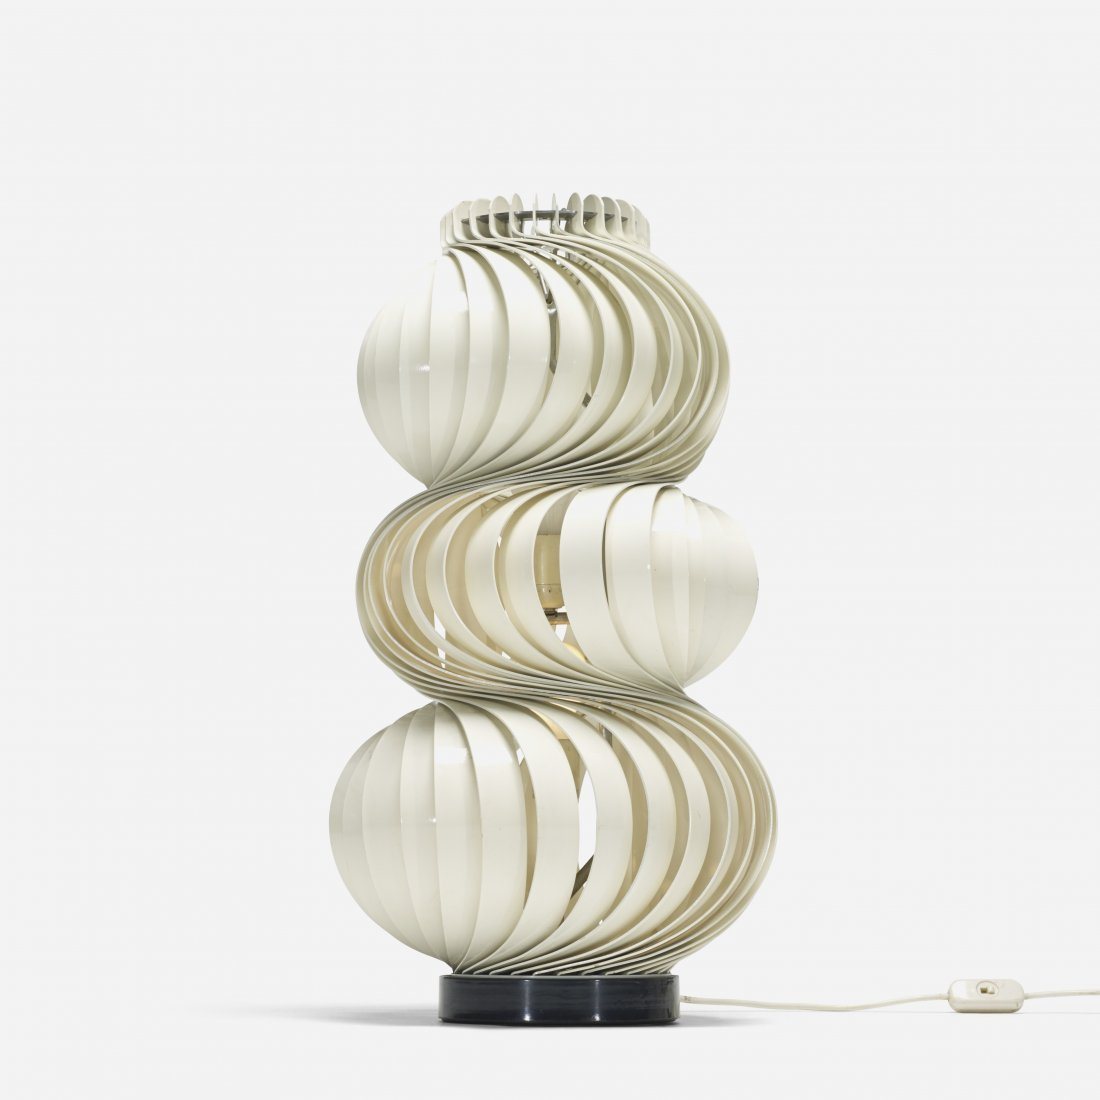 Olaf Von Bohr Medusa table lamp